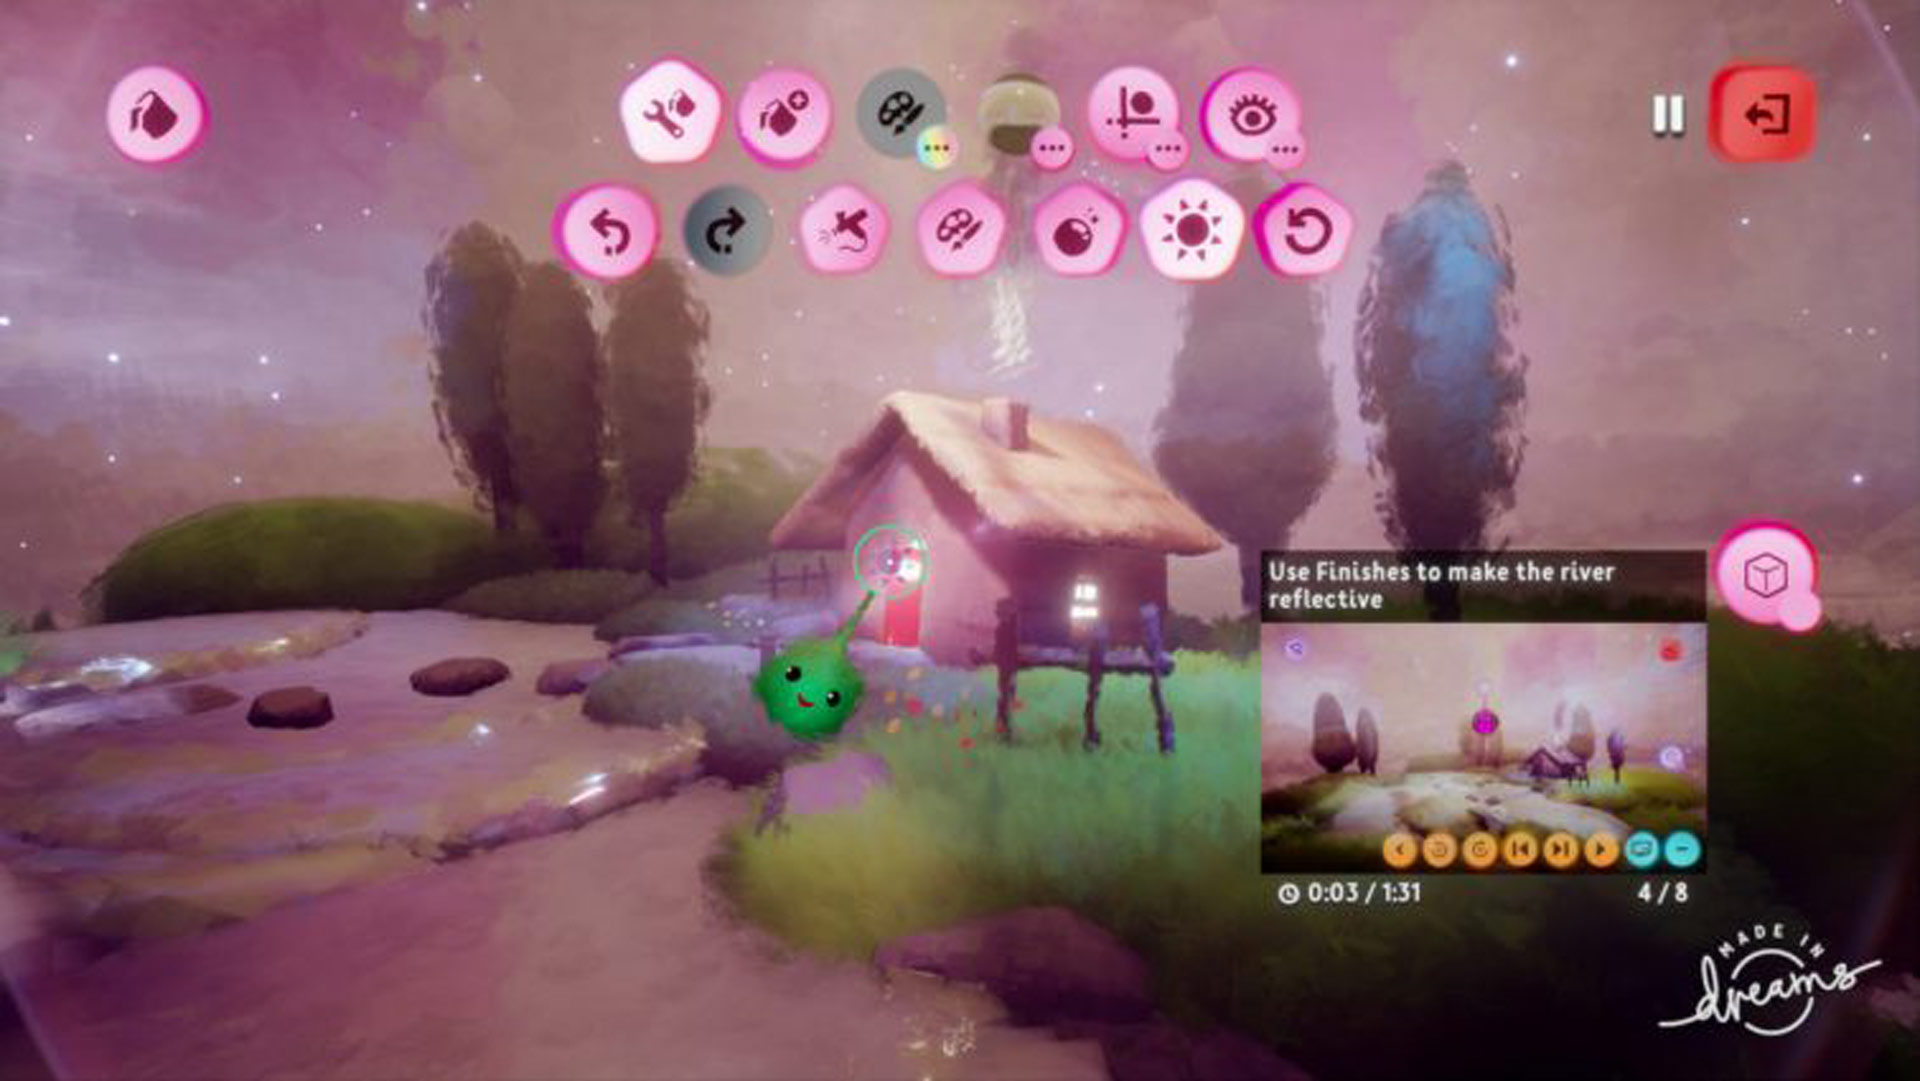 'Dreams' to Launch into Early Access on PS4 Soon, PSVR Support Still Pending